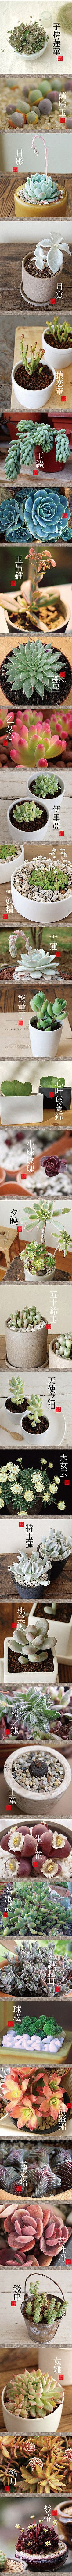 The Wolf Cub & Lucy : thewolfcub.com - Cacti and Succulents